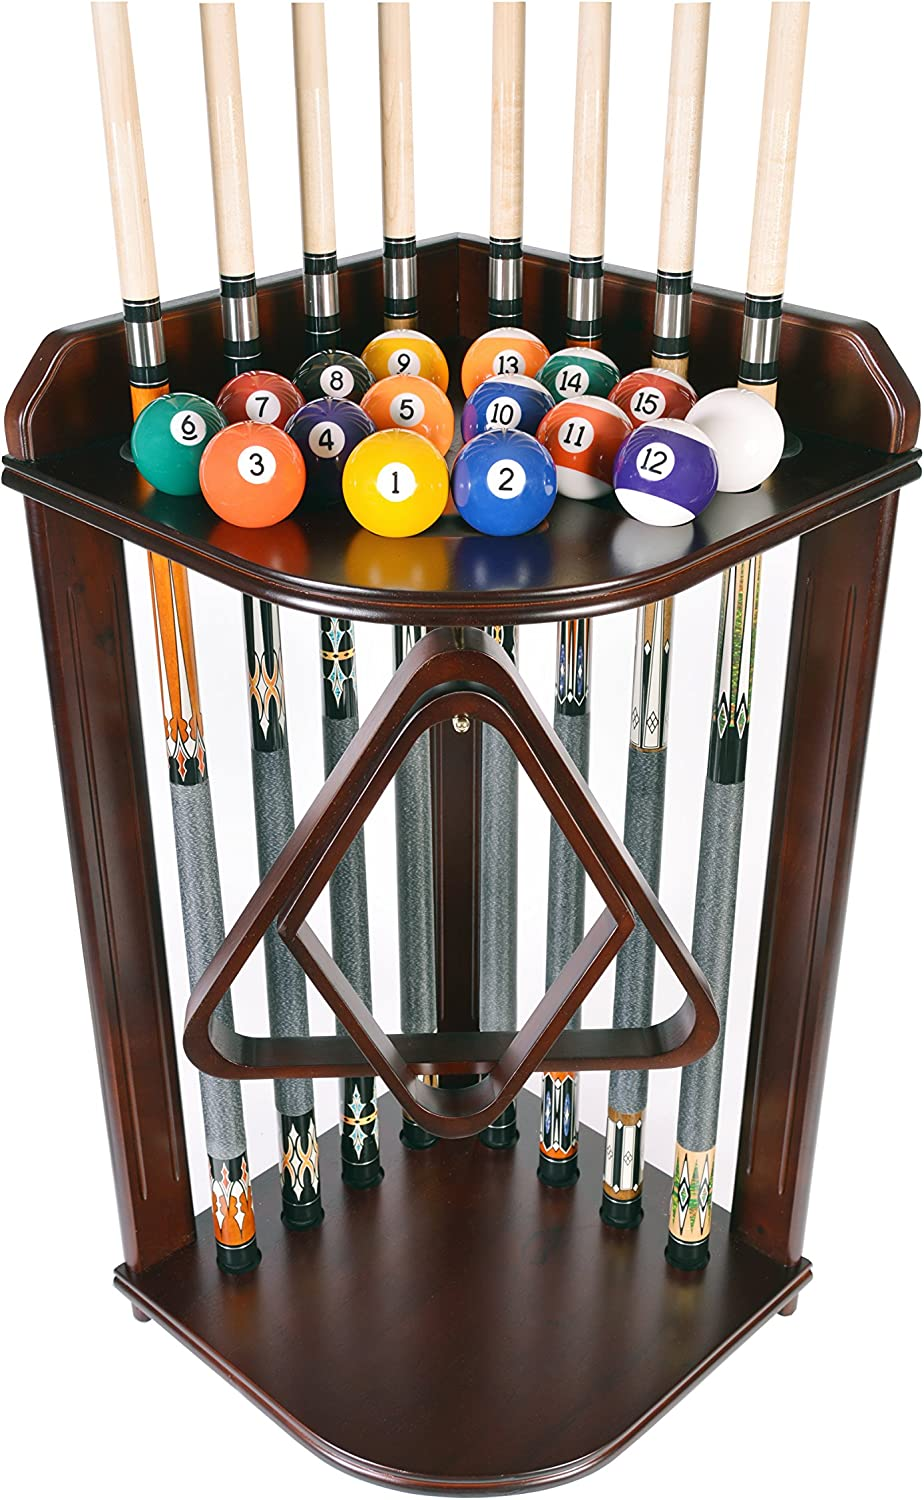 Pool Cue Rack Only Billiard Stick Stand Holds 8 Cues & Ball Set Choose Oak or Mahogany Finish (Mahogany)